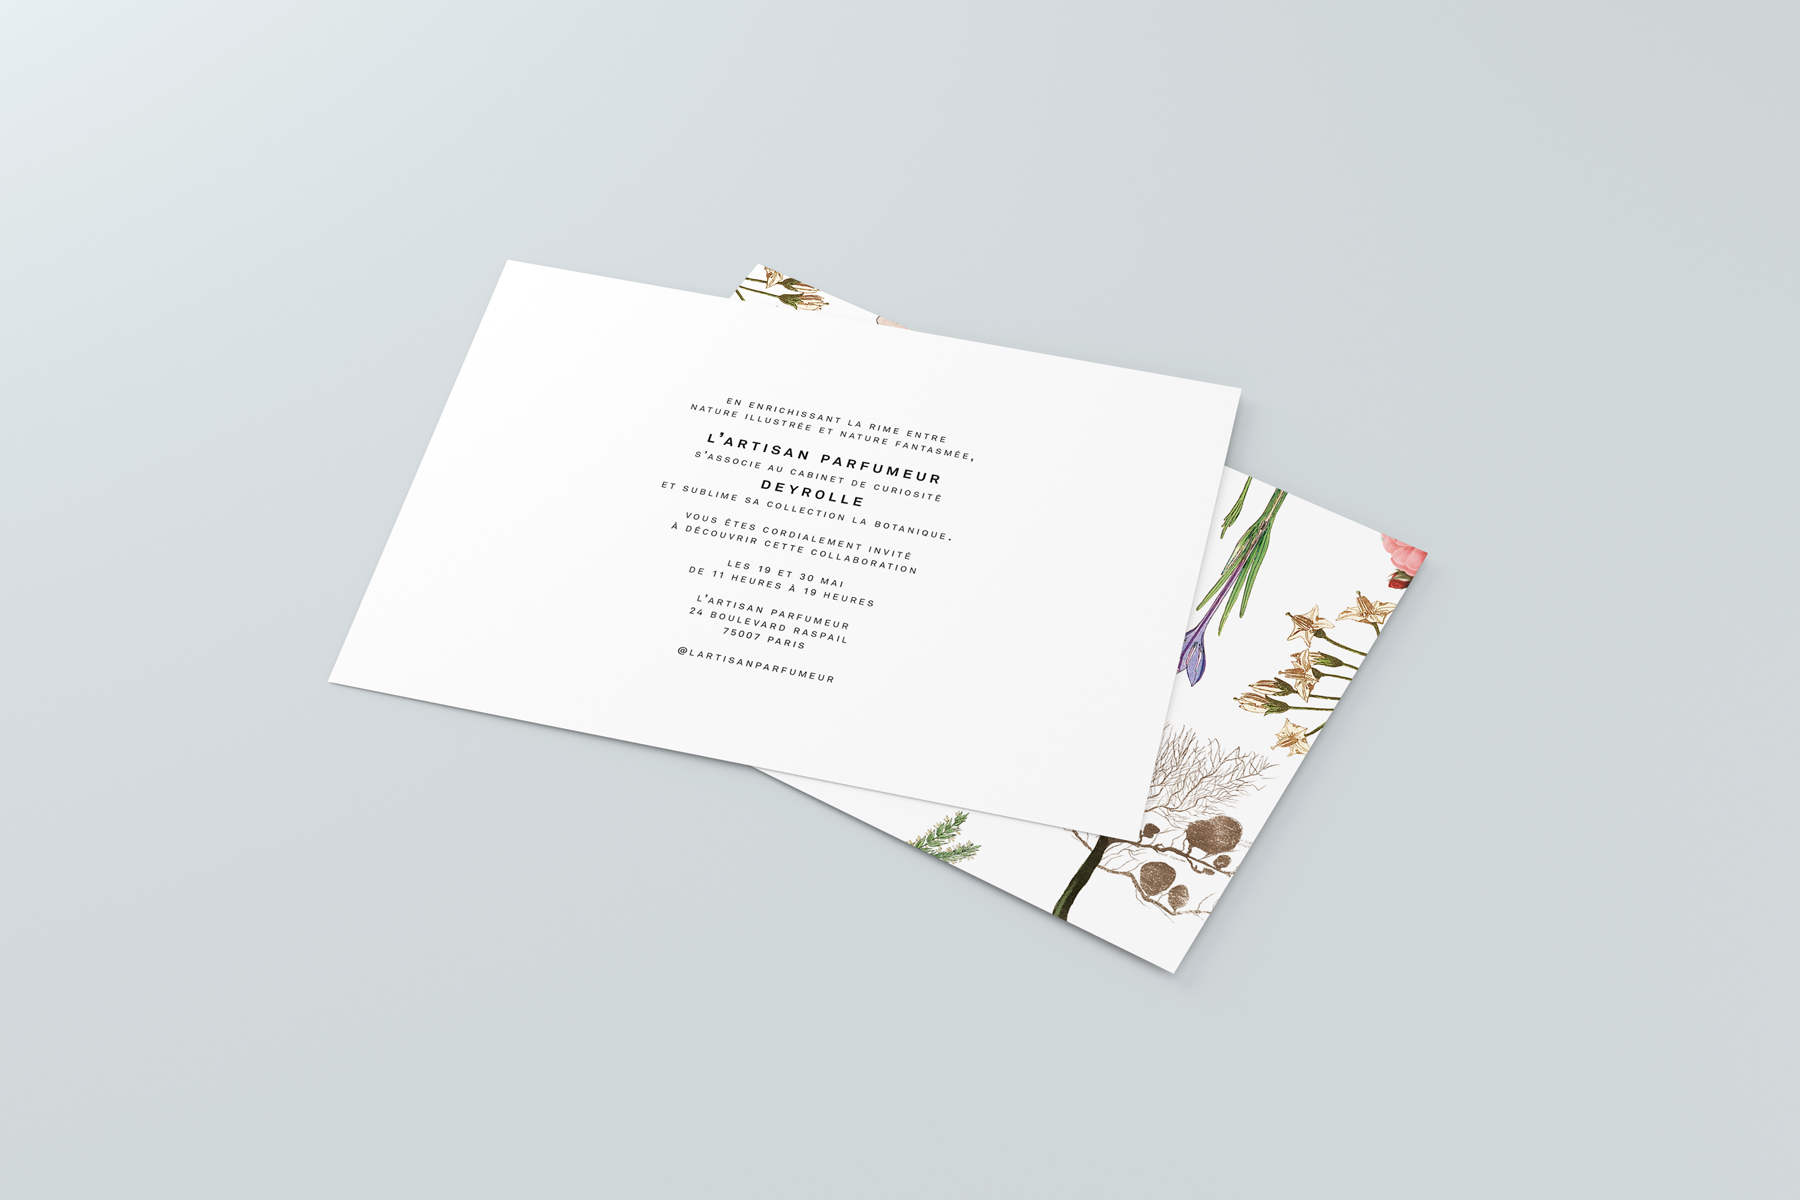 lee-simmons-design-ltd-LAP-invite-02.jpg